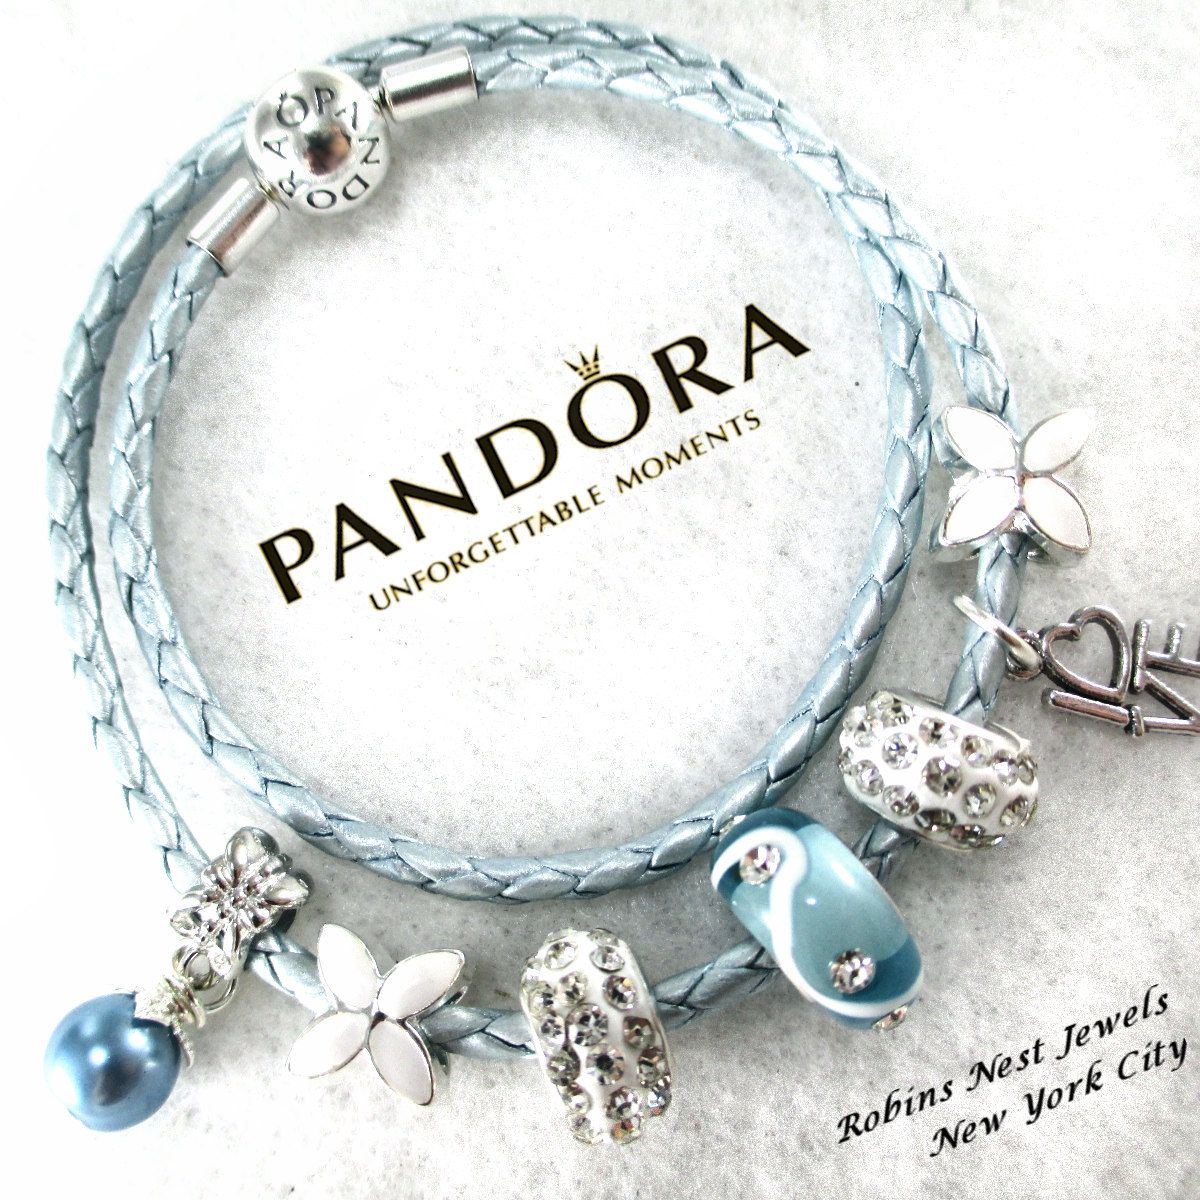 Leather Wrap Bracelet With Charms: Authentic Pandora, Pandora Bracelet, Leather Bracelet